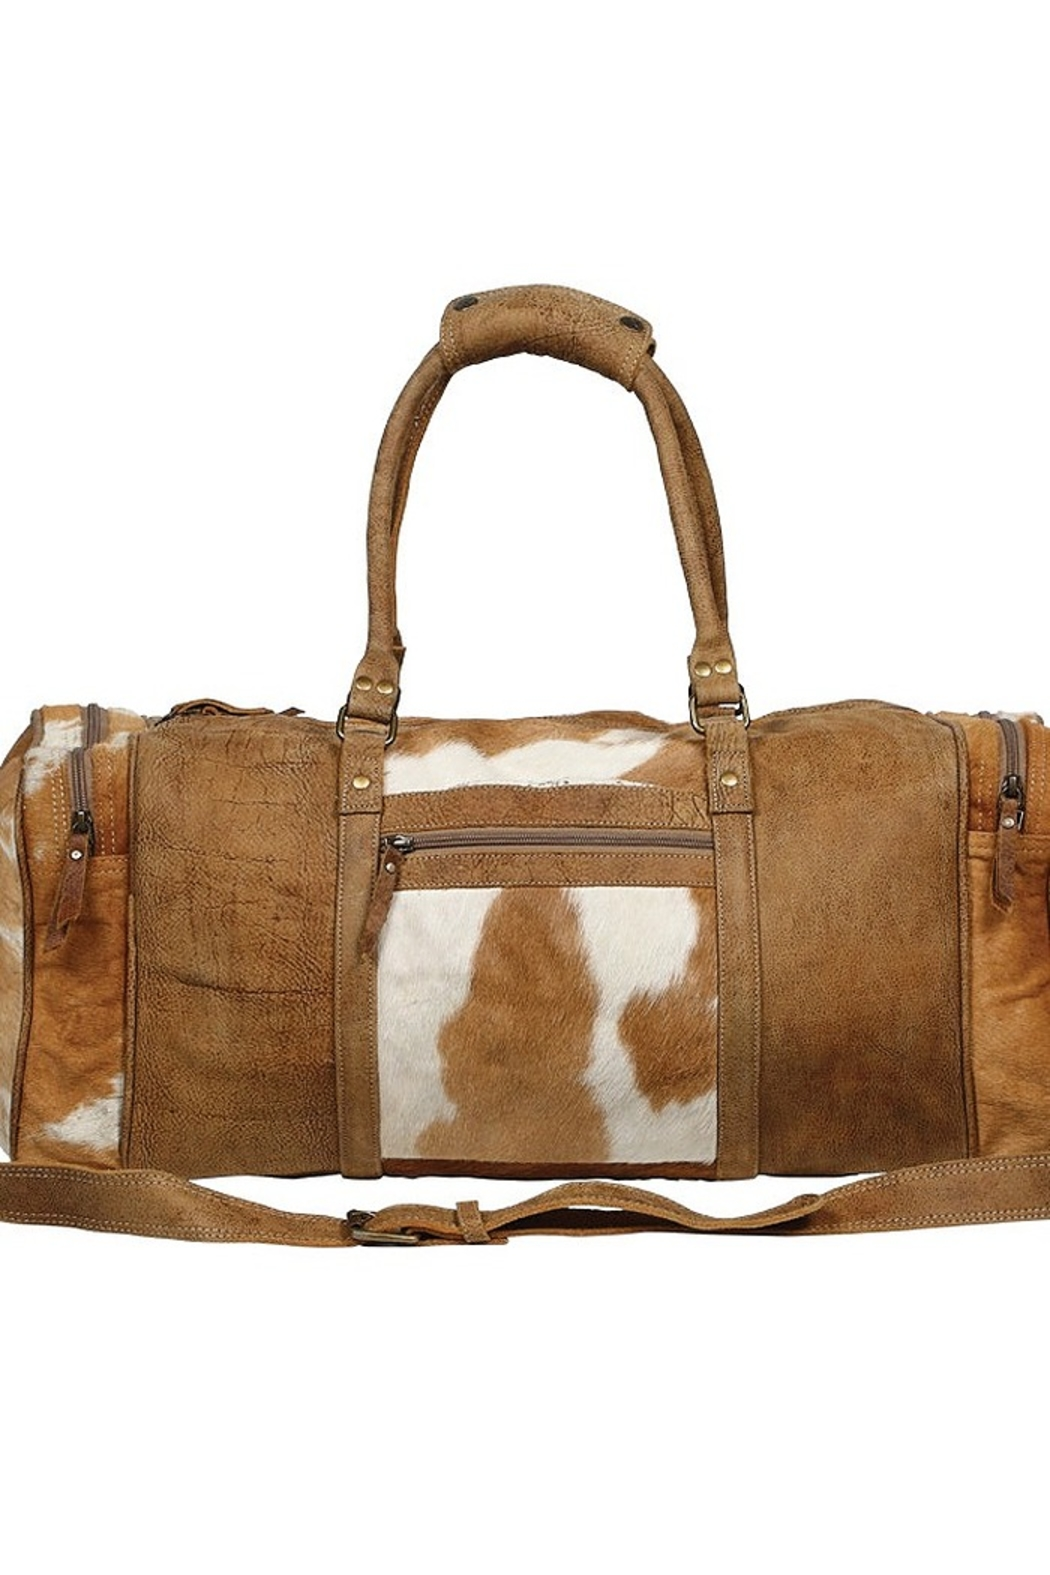 Myra Bags CINNAMON TRAVELLER BAG - Front Cropped Image